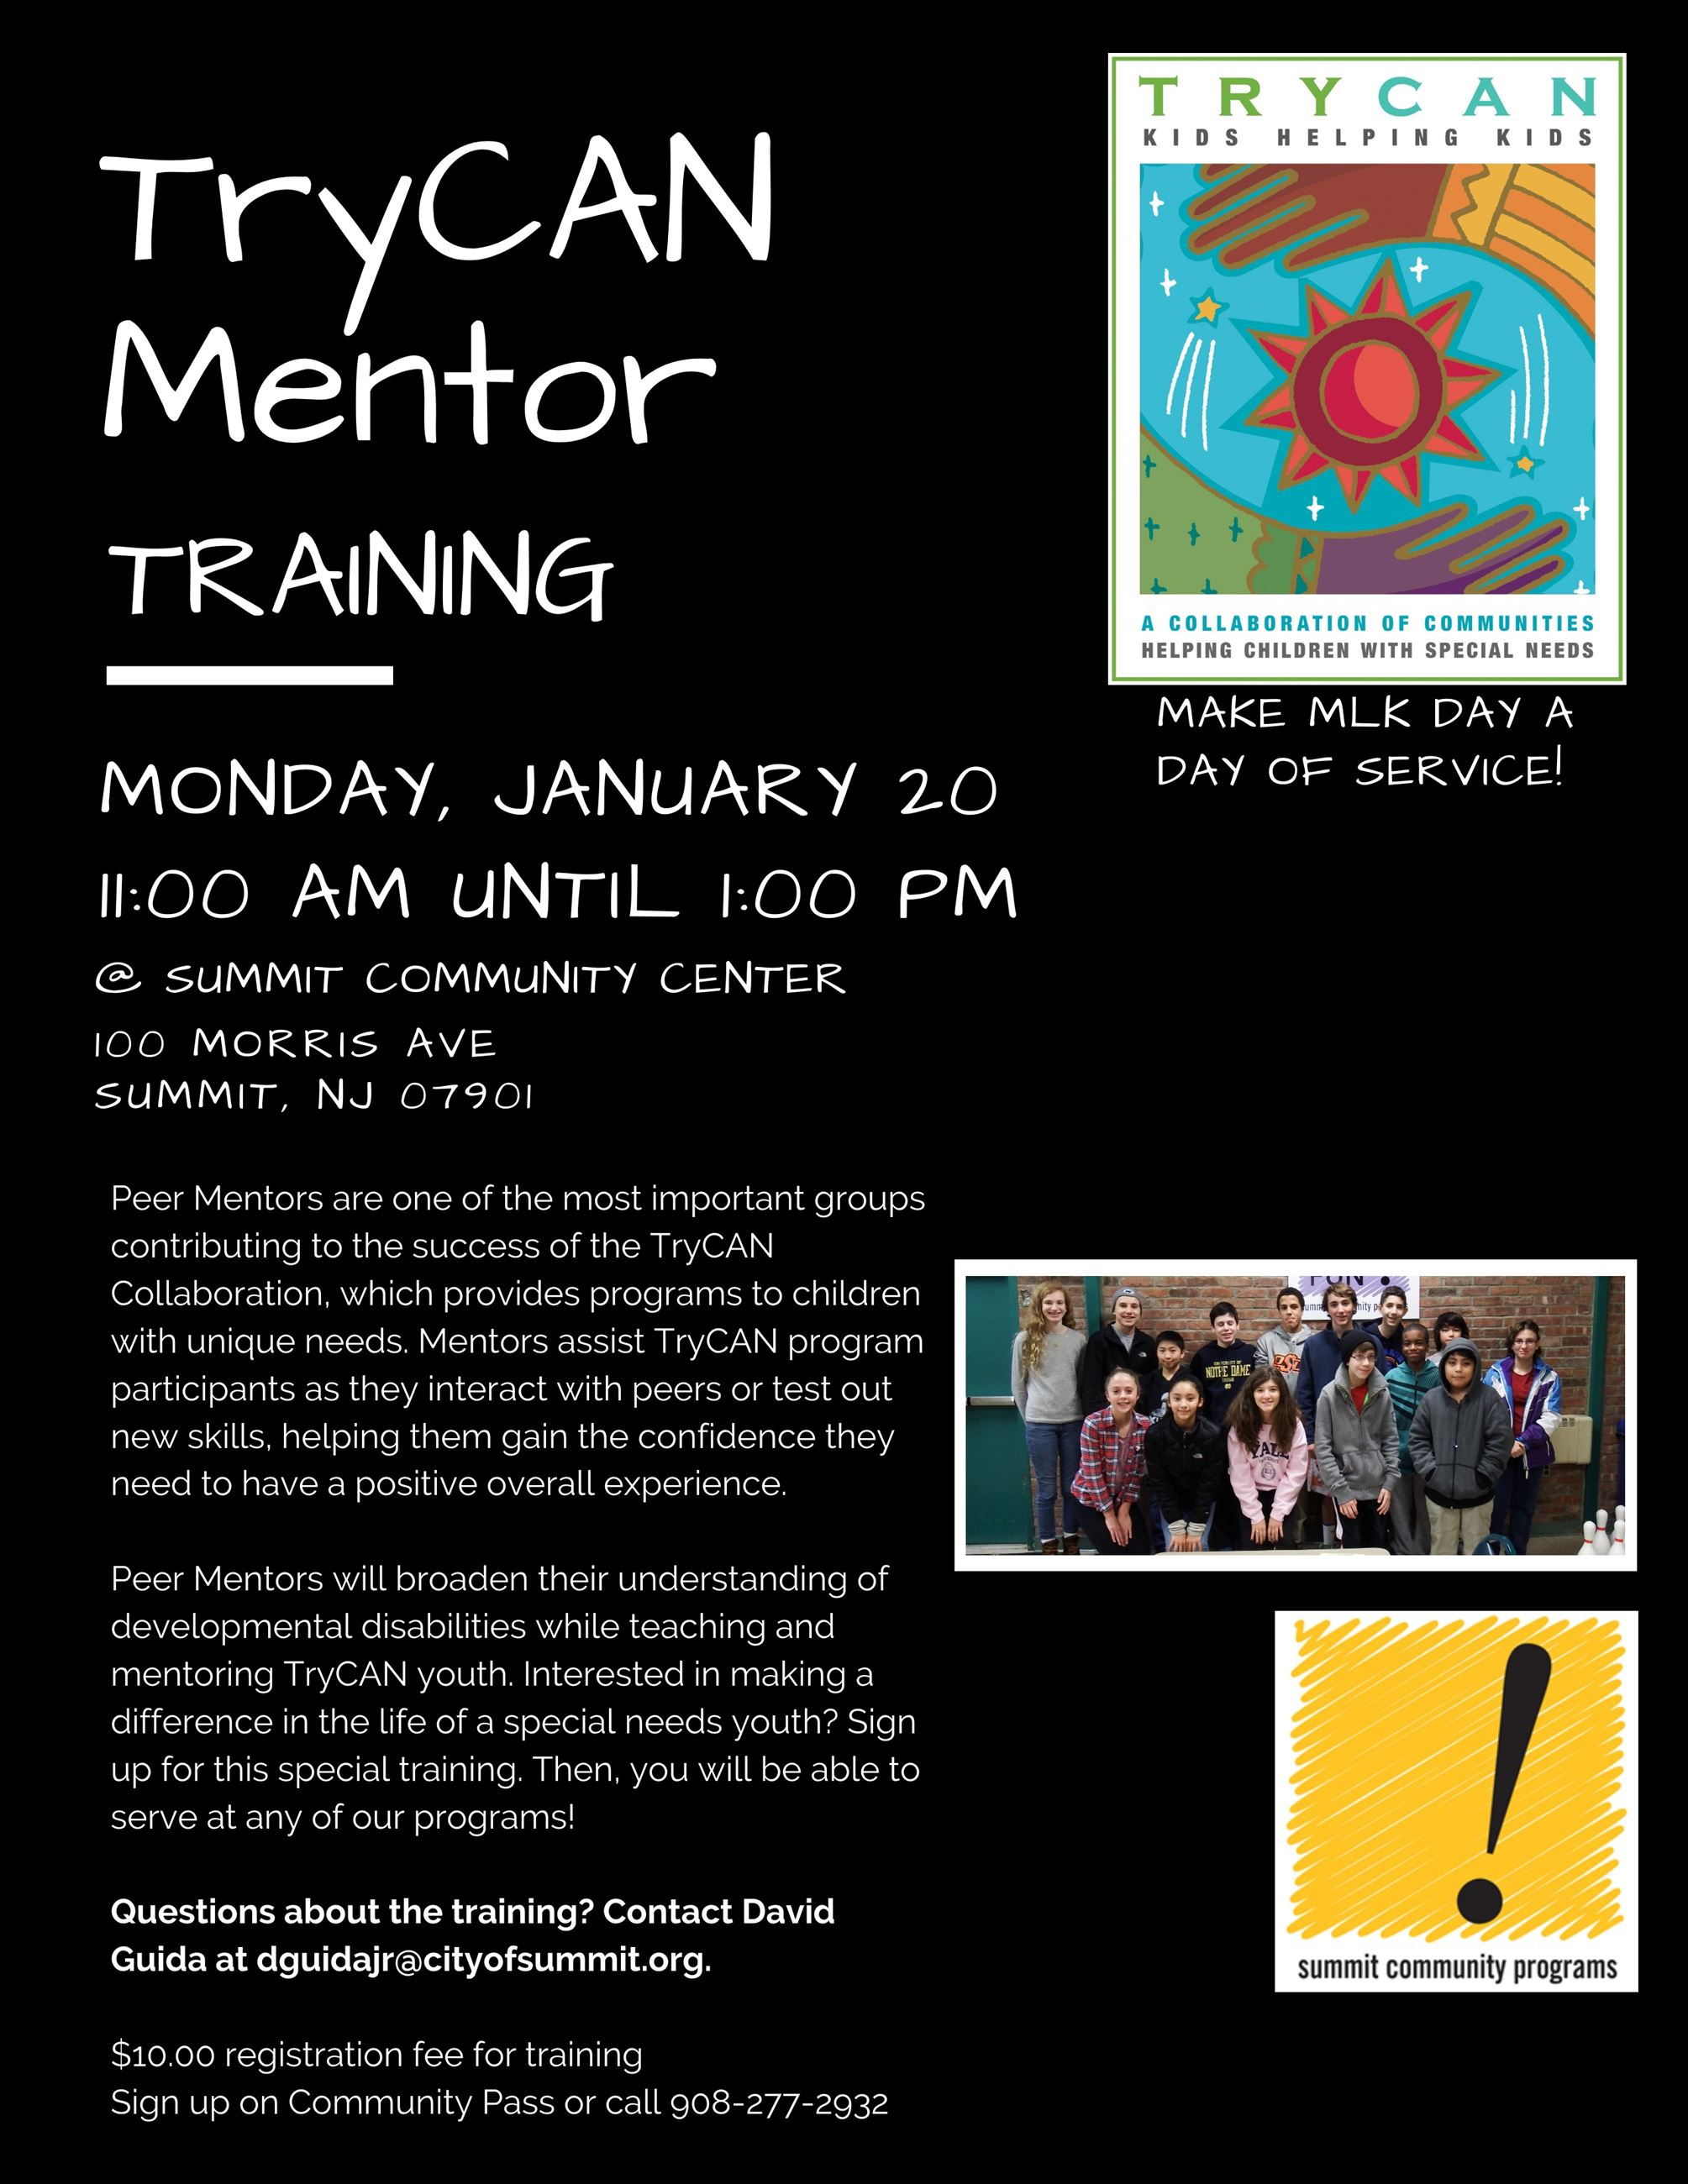 Try can mlk daymentor training 2020